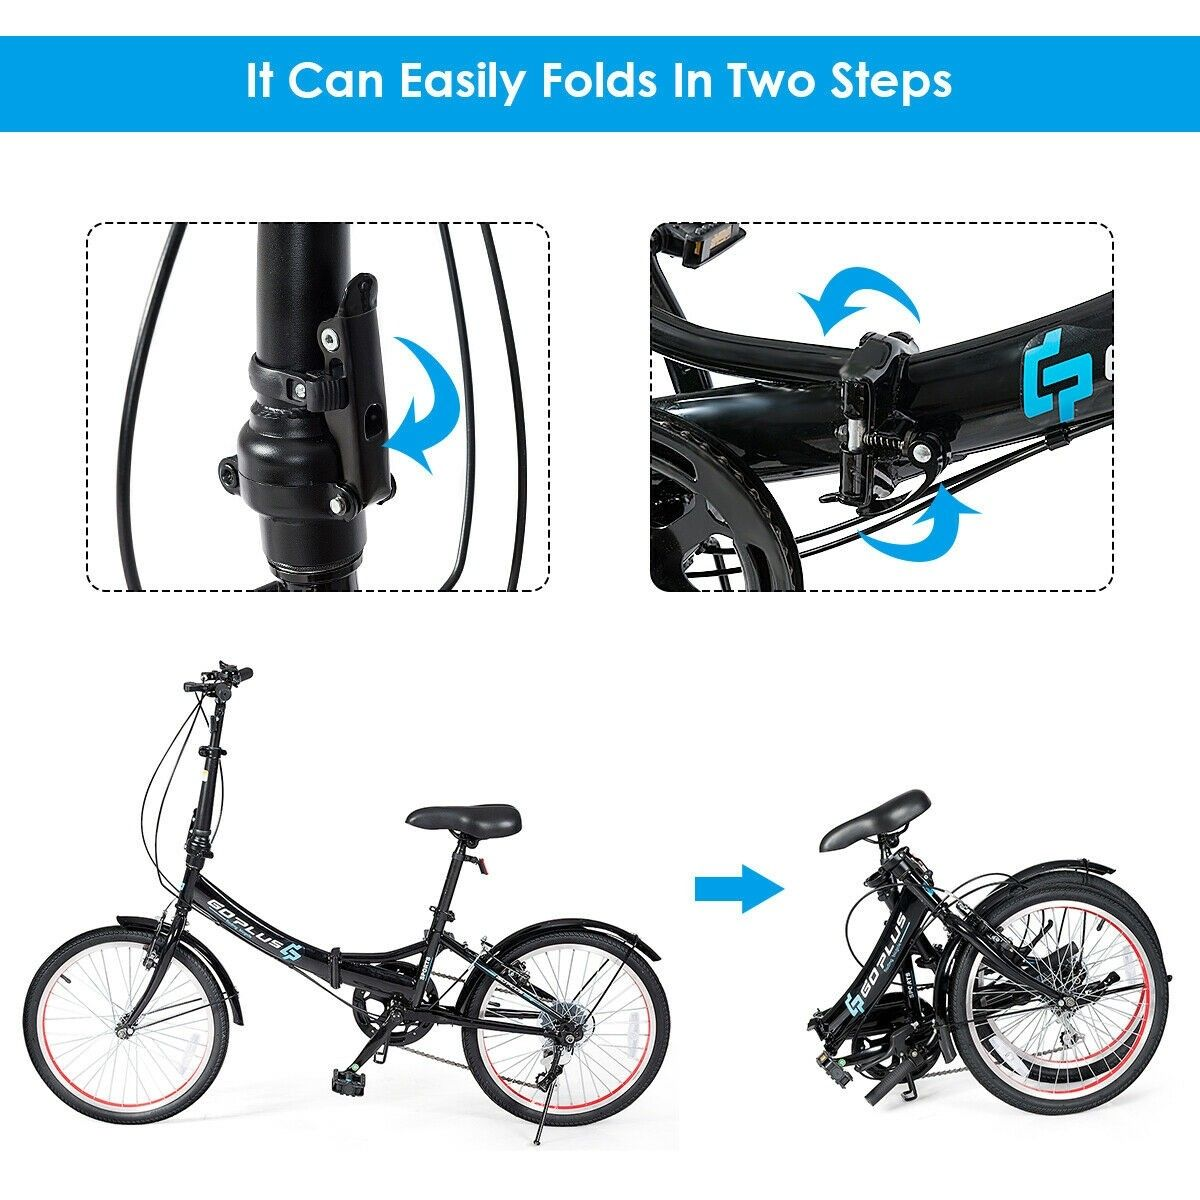 20 Lightweight Adult Folding Bicycle Bike With 7 Speed Drivetrain